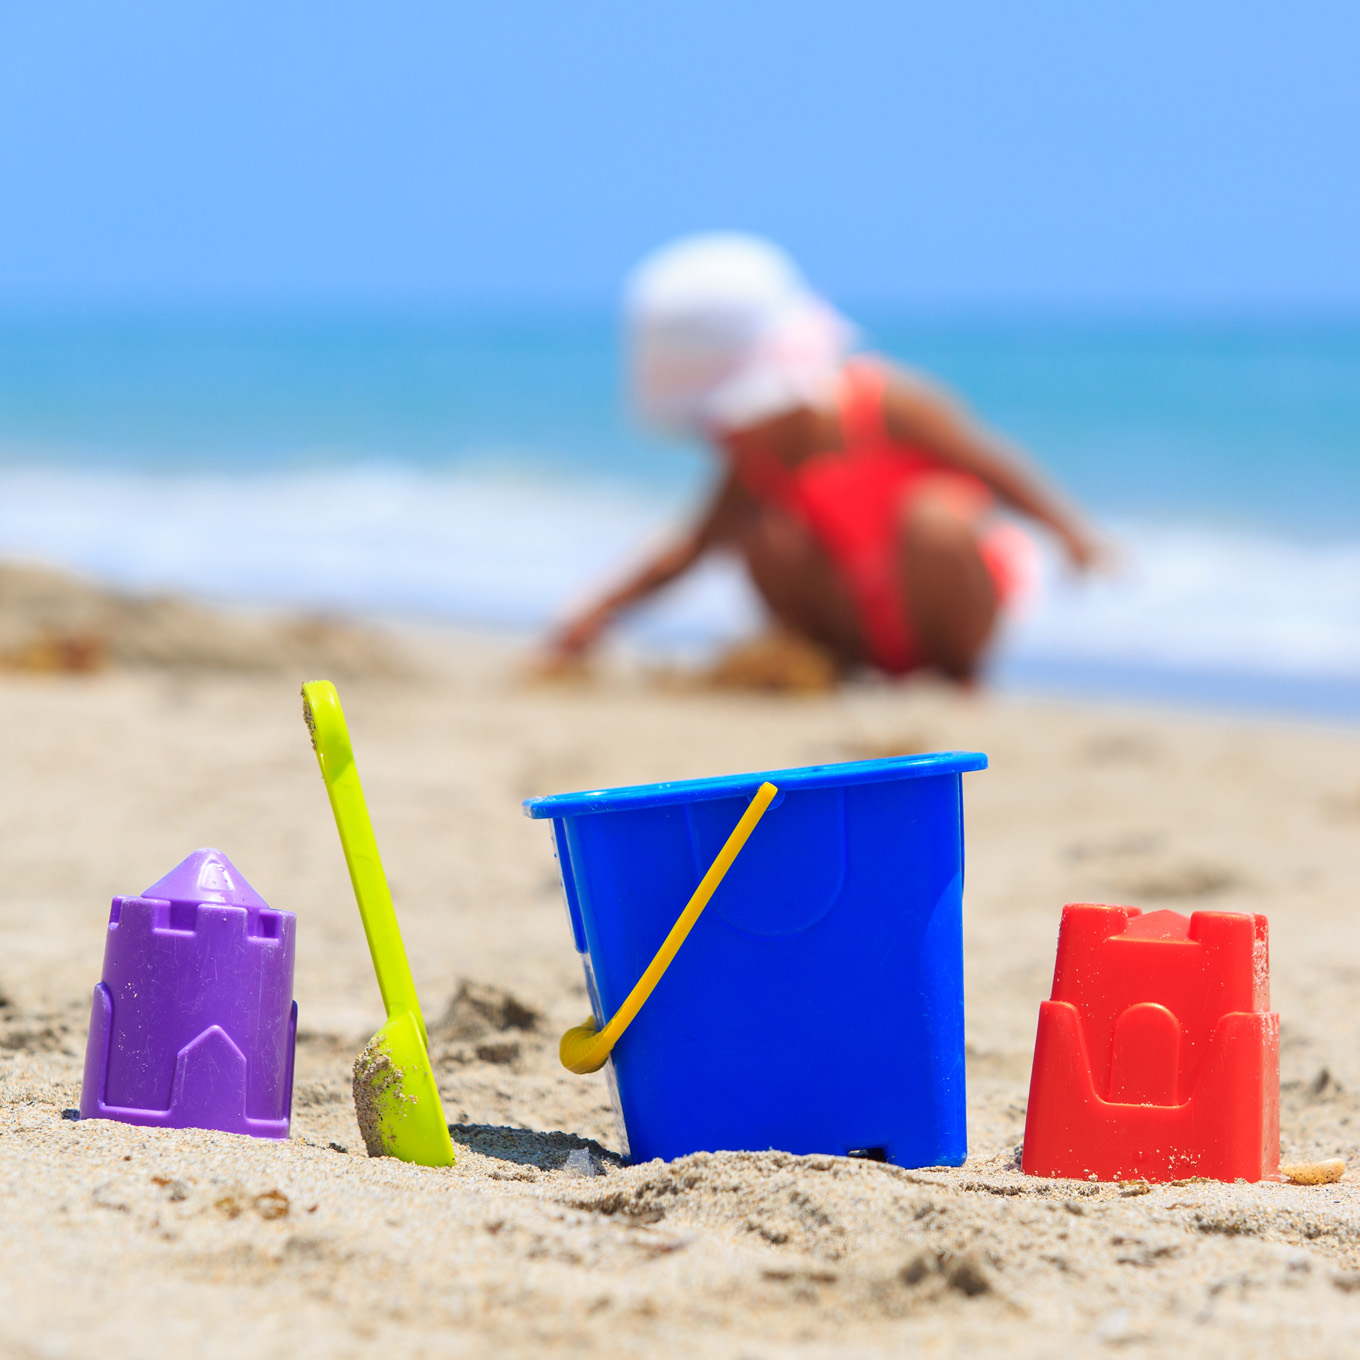 Child on Beach with Sand Toys